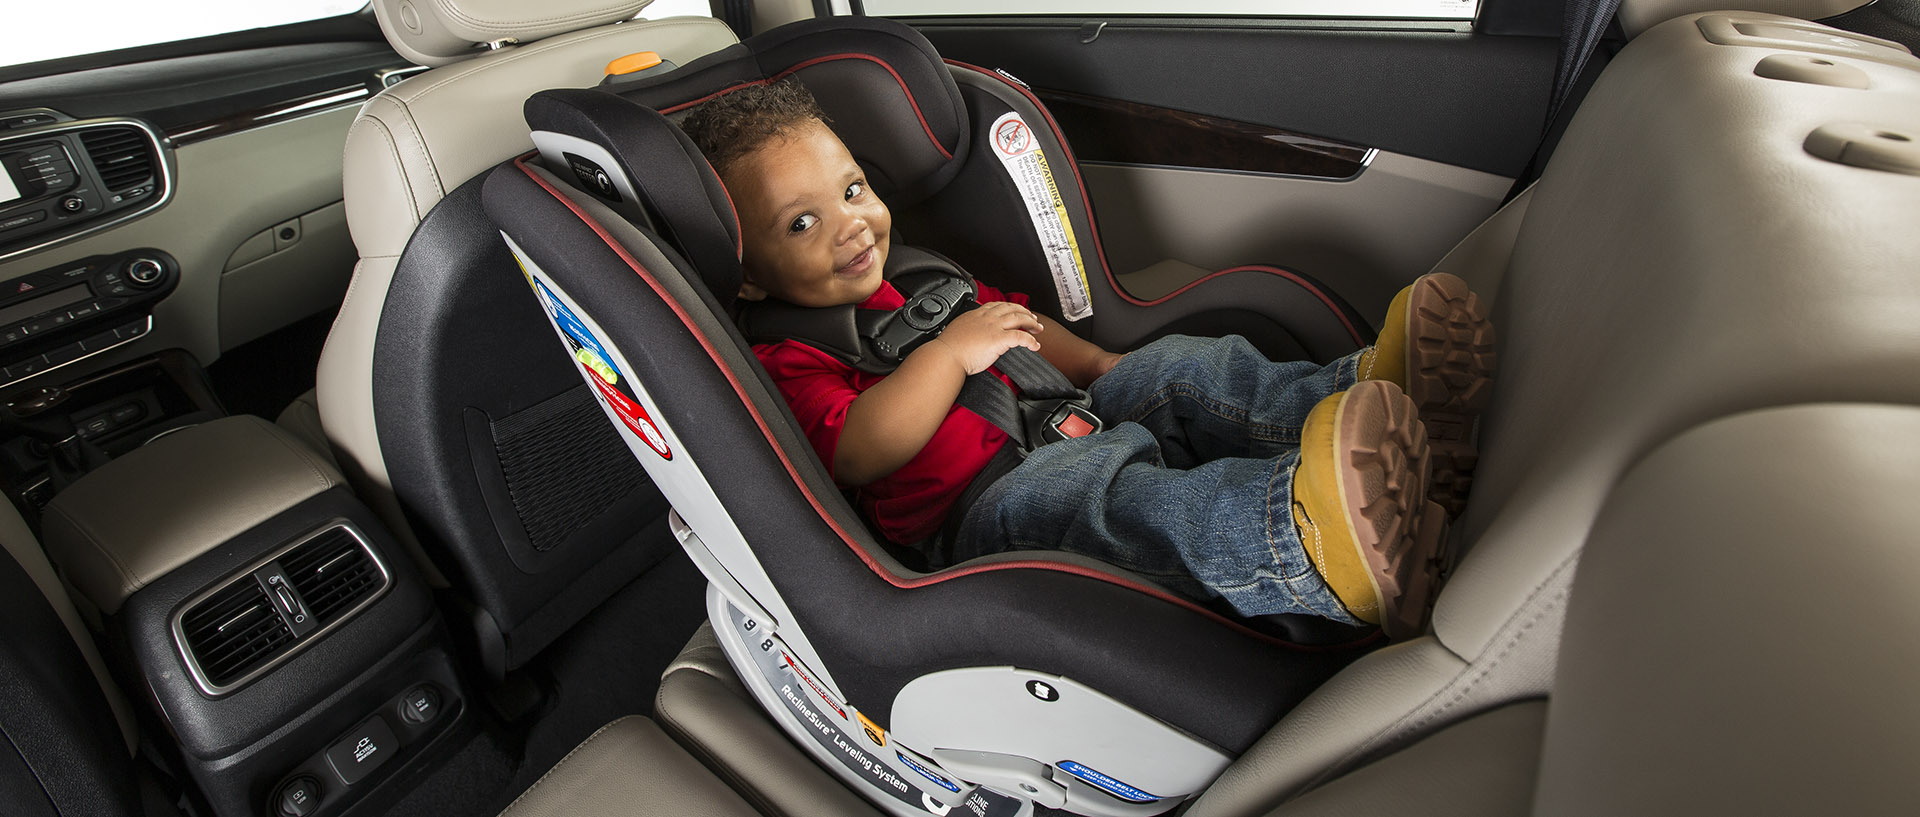 How To Put A Britax Car Seat In